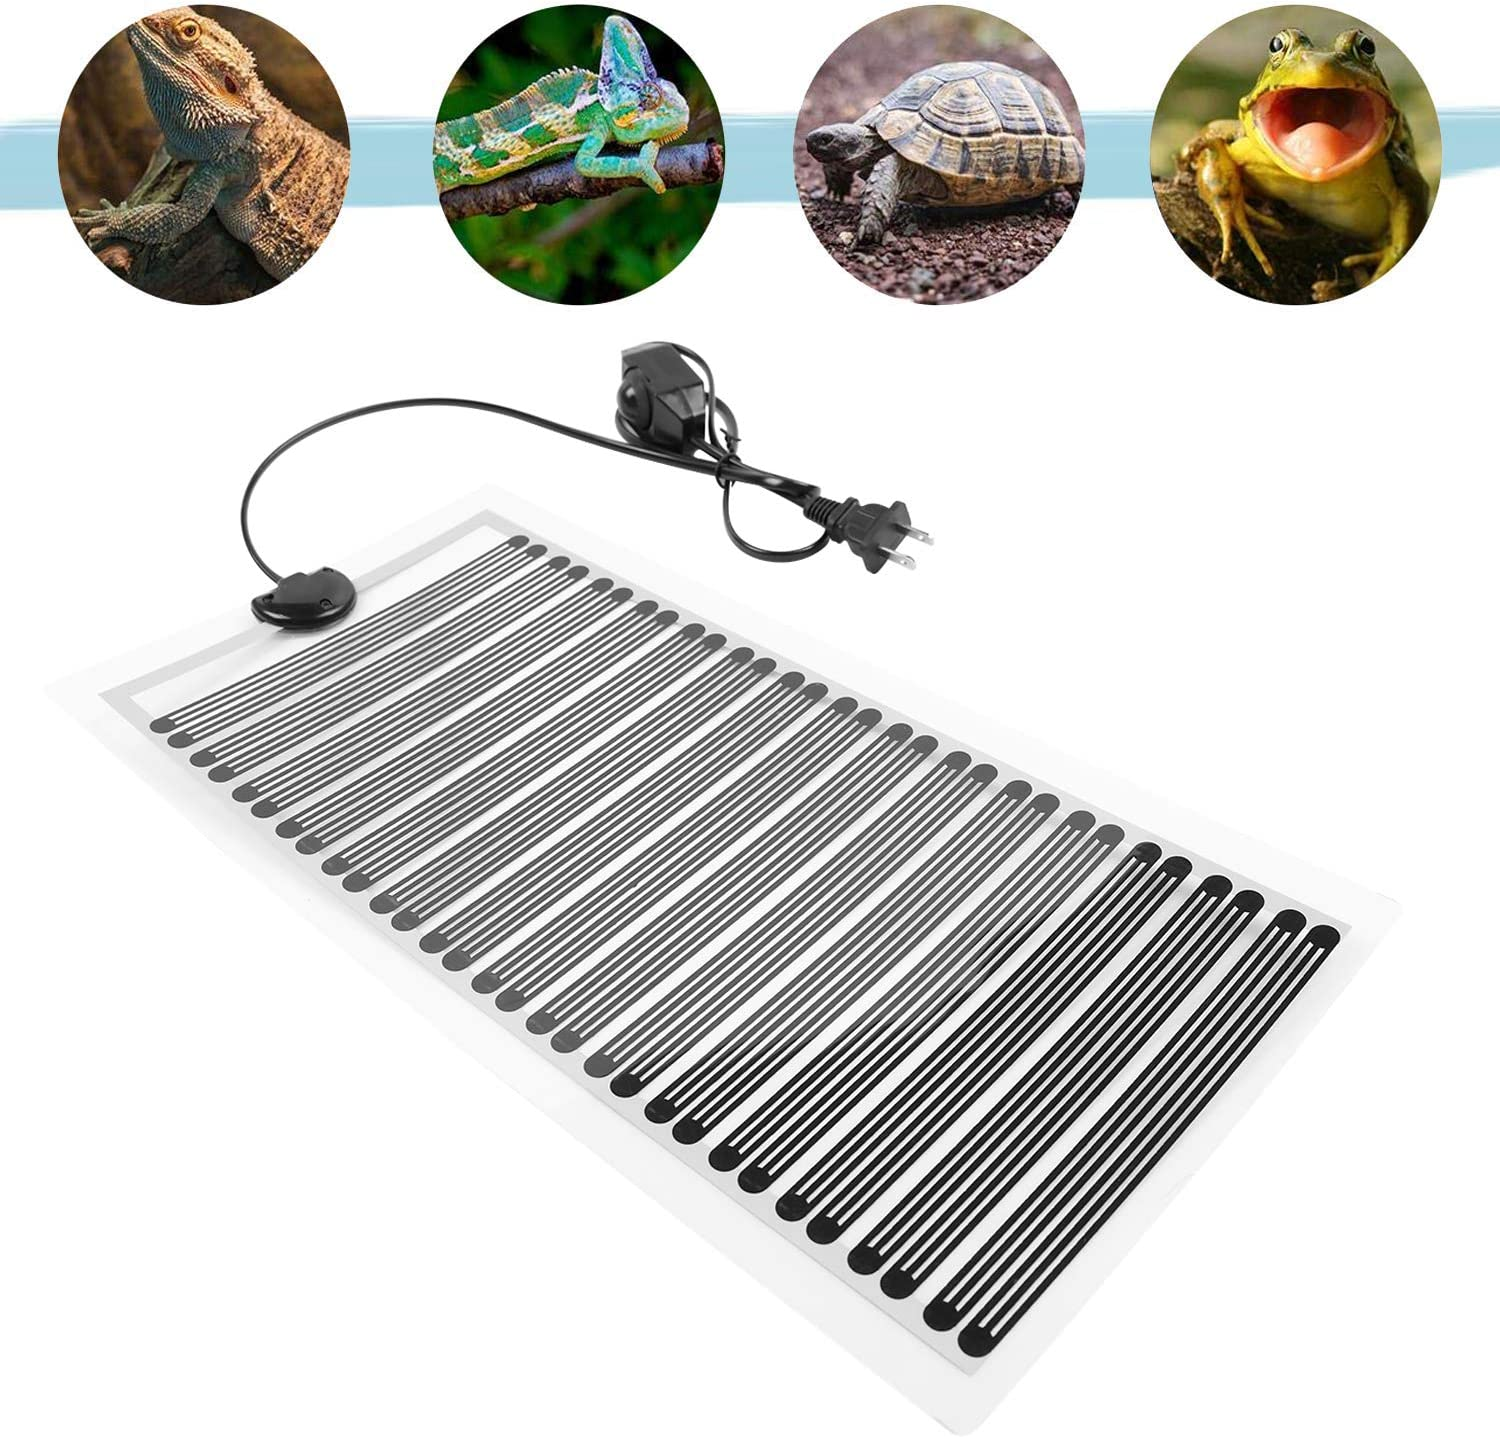 Fashionclubs Reptile Heat Pad Under Tank Heating Mat, 110V 25W Reptile Tank Warmer Terrarium Heater Mat with Temperature Controller Leopard Gecko Heating Pad